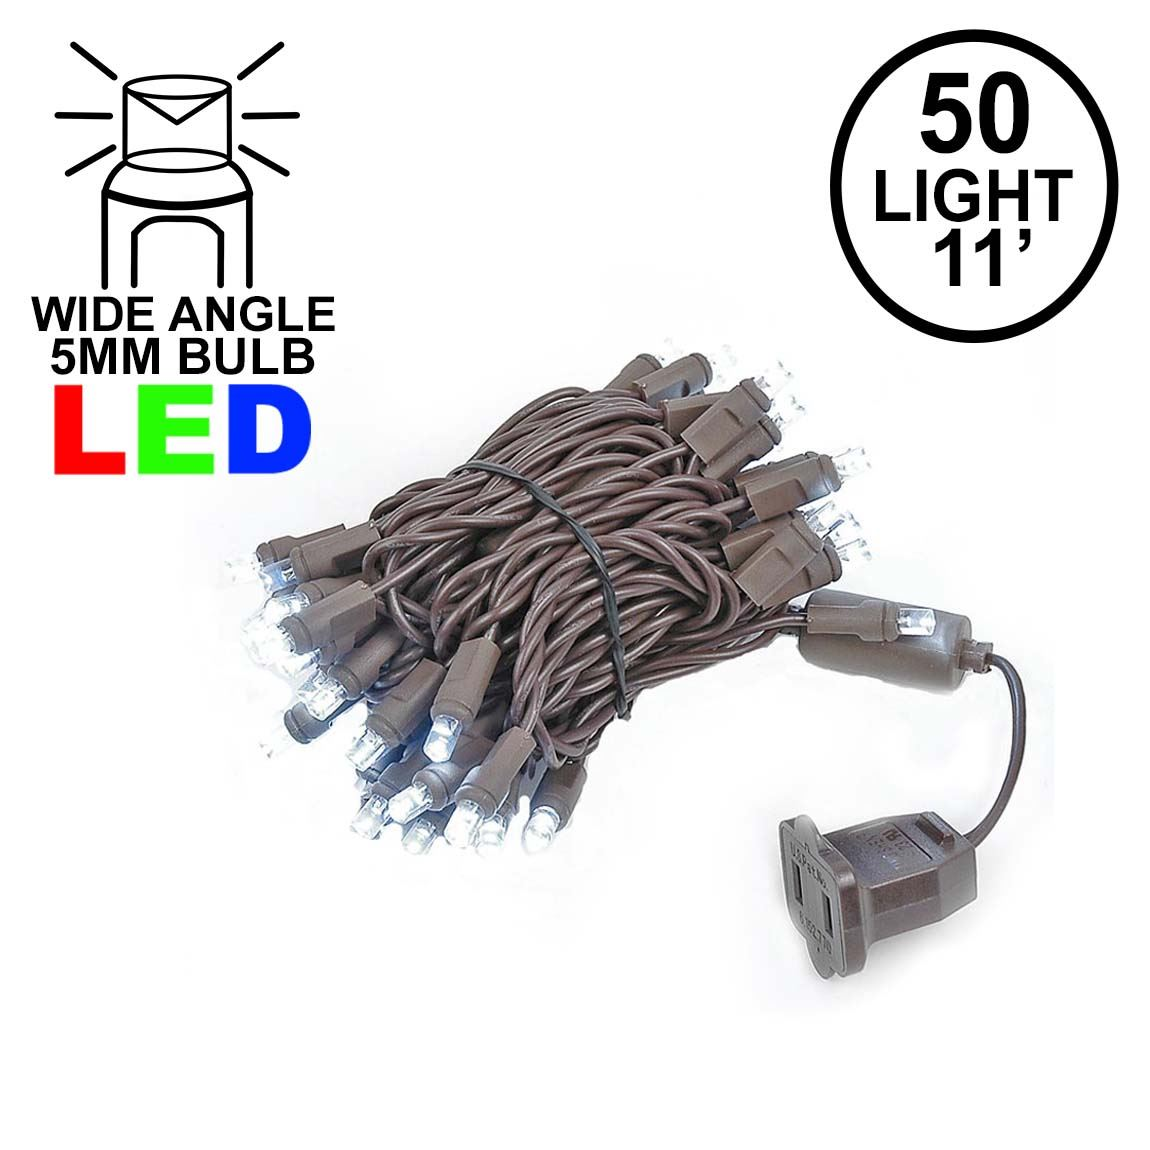 Picture of 50 LED Pure White LED Christmas Lights 11' Long on Brown Wire